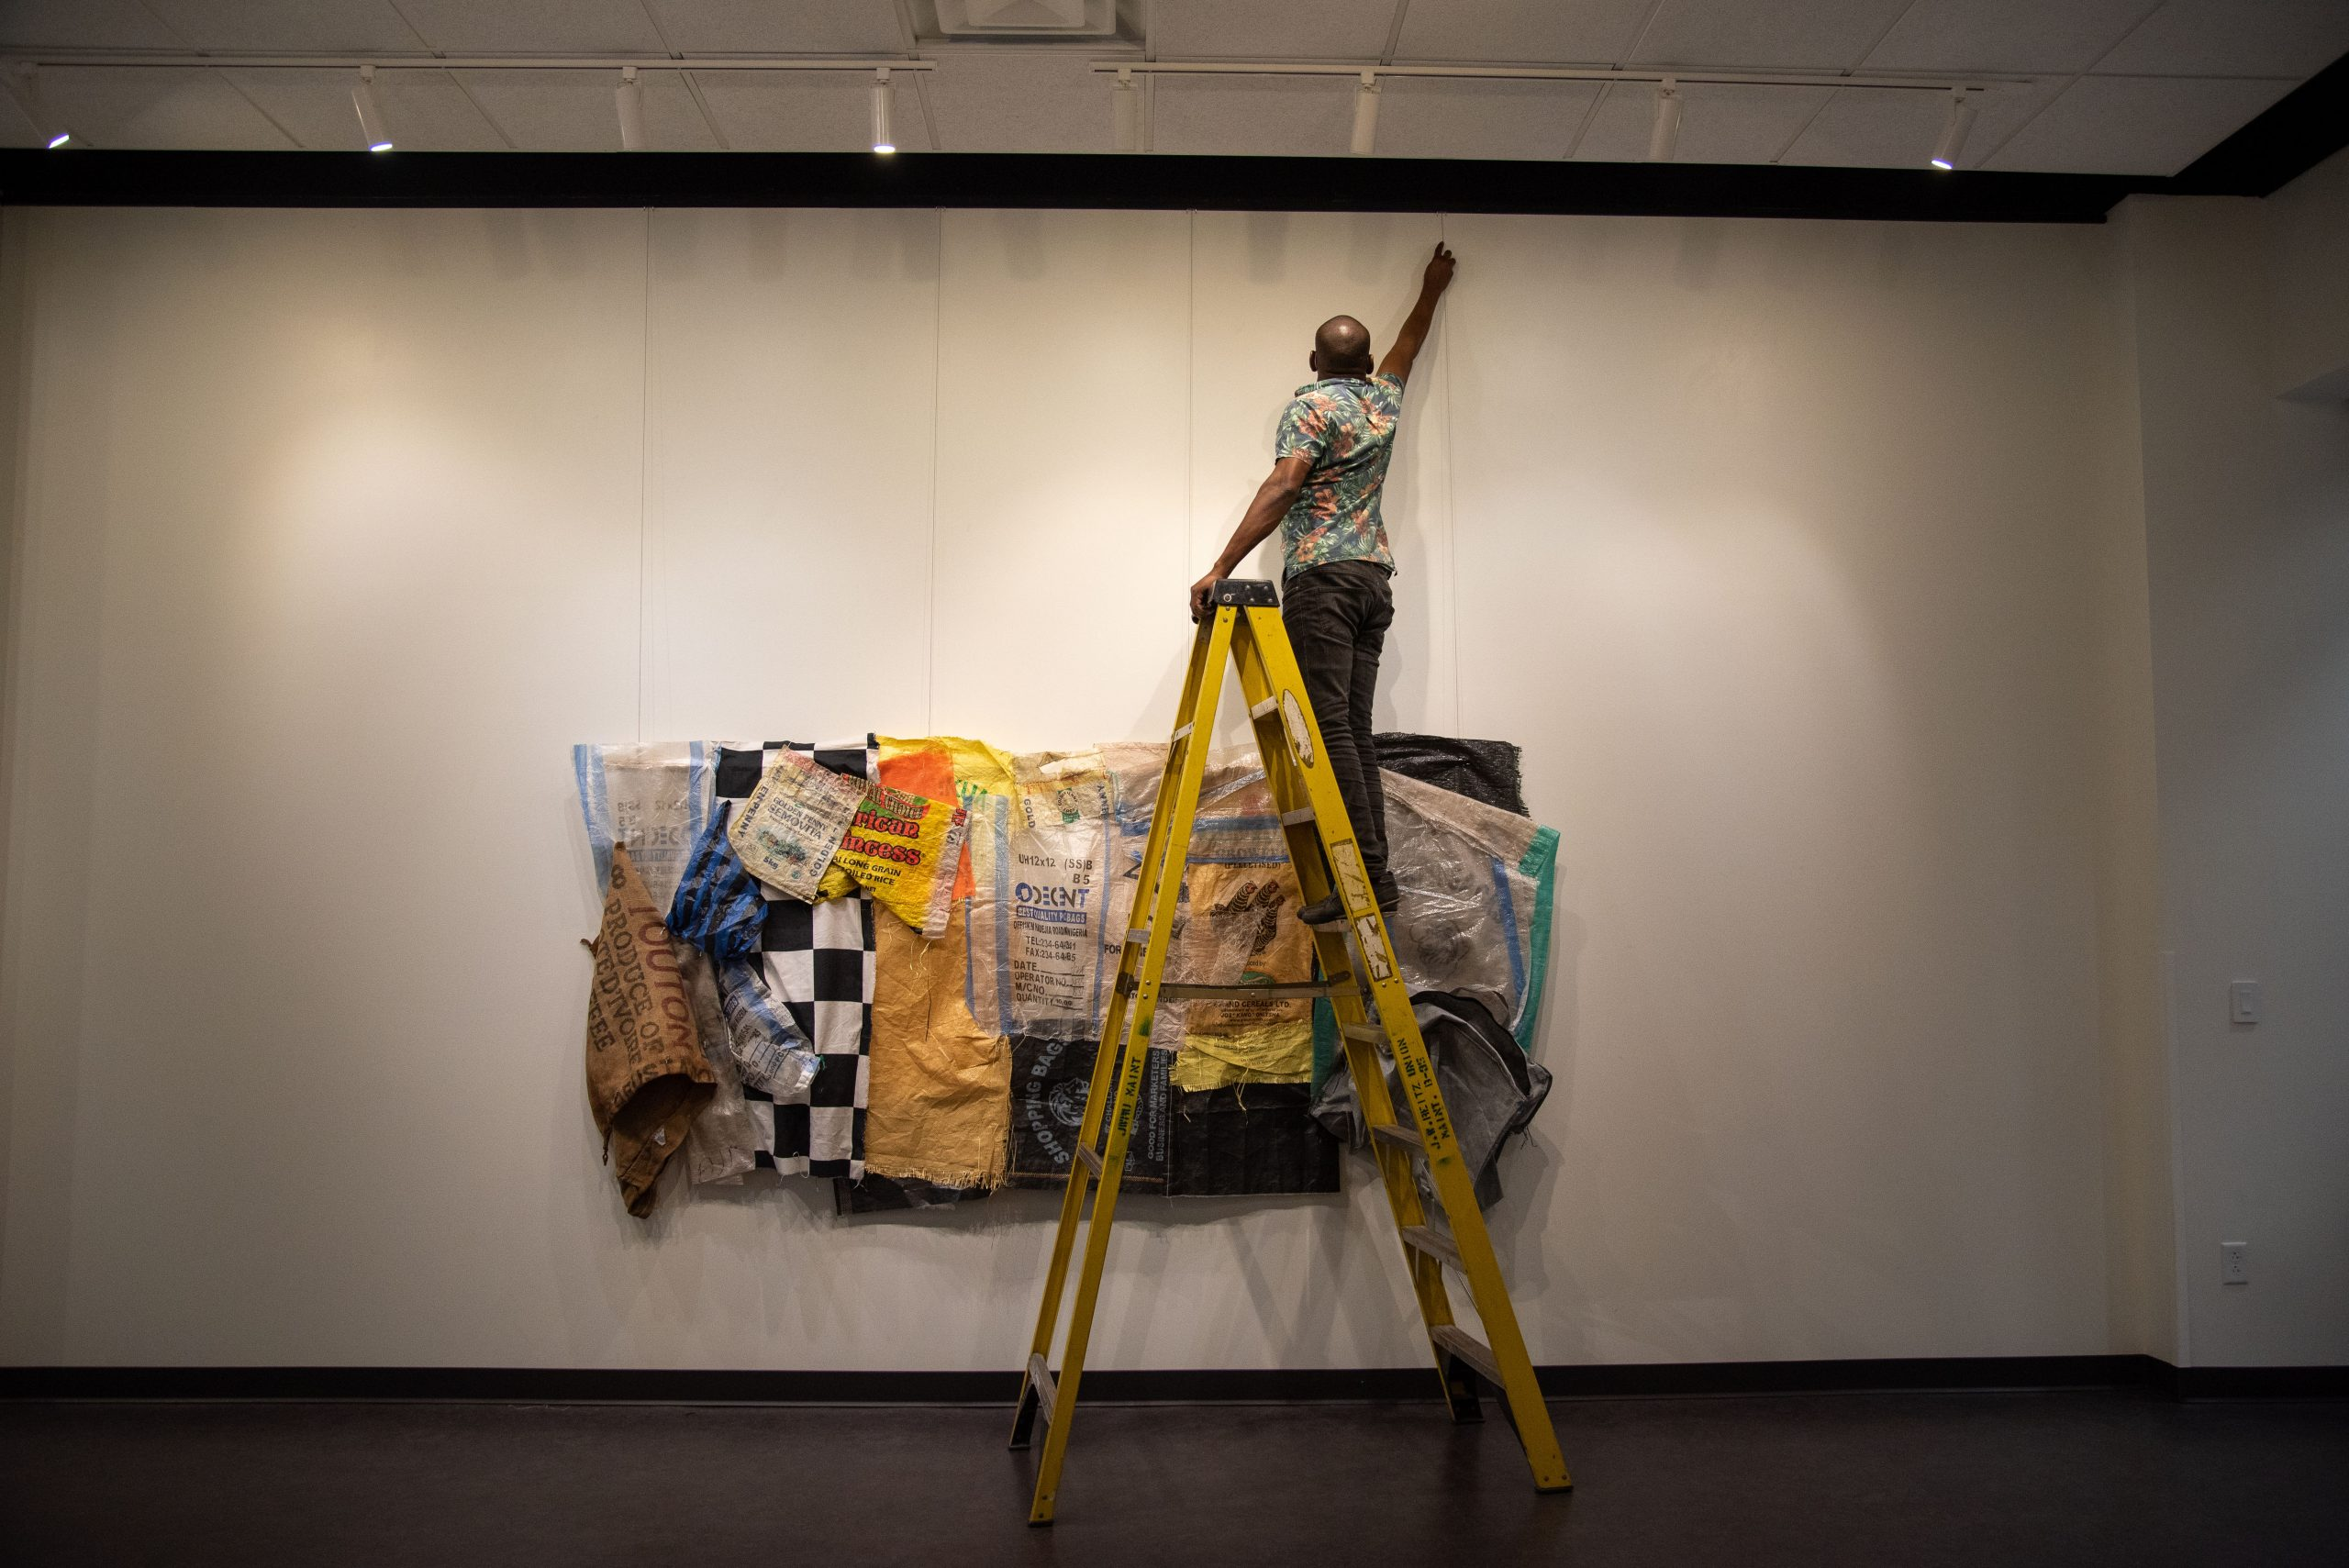 An artist hanging a painting